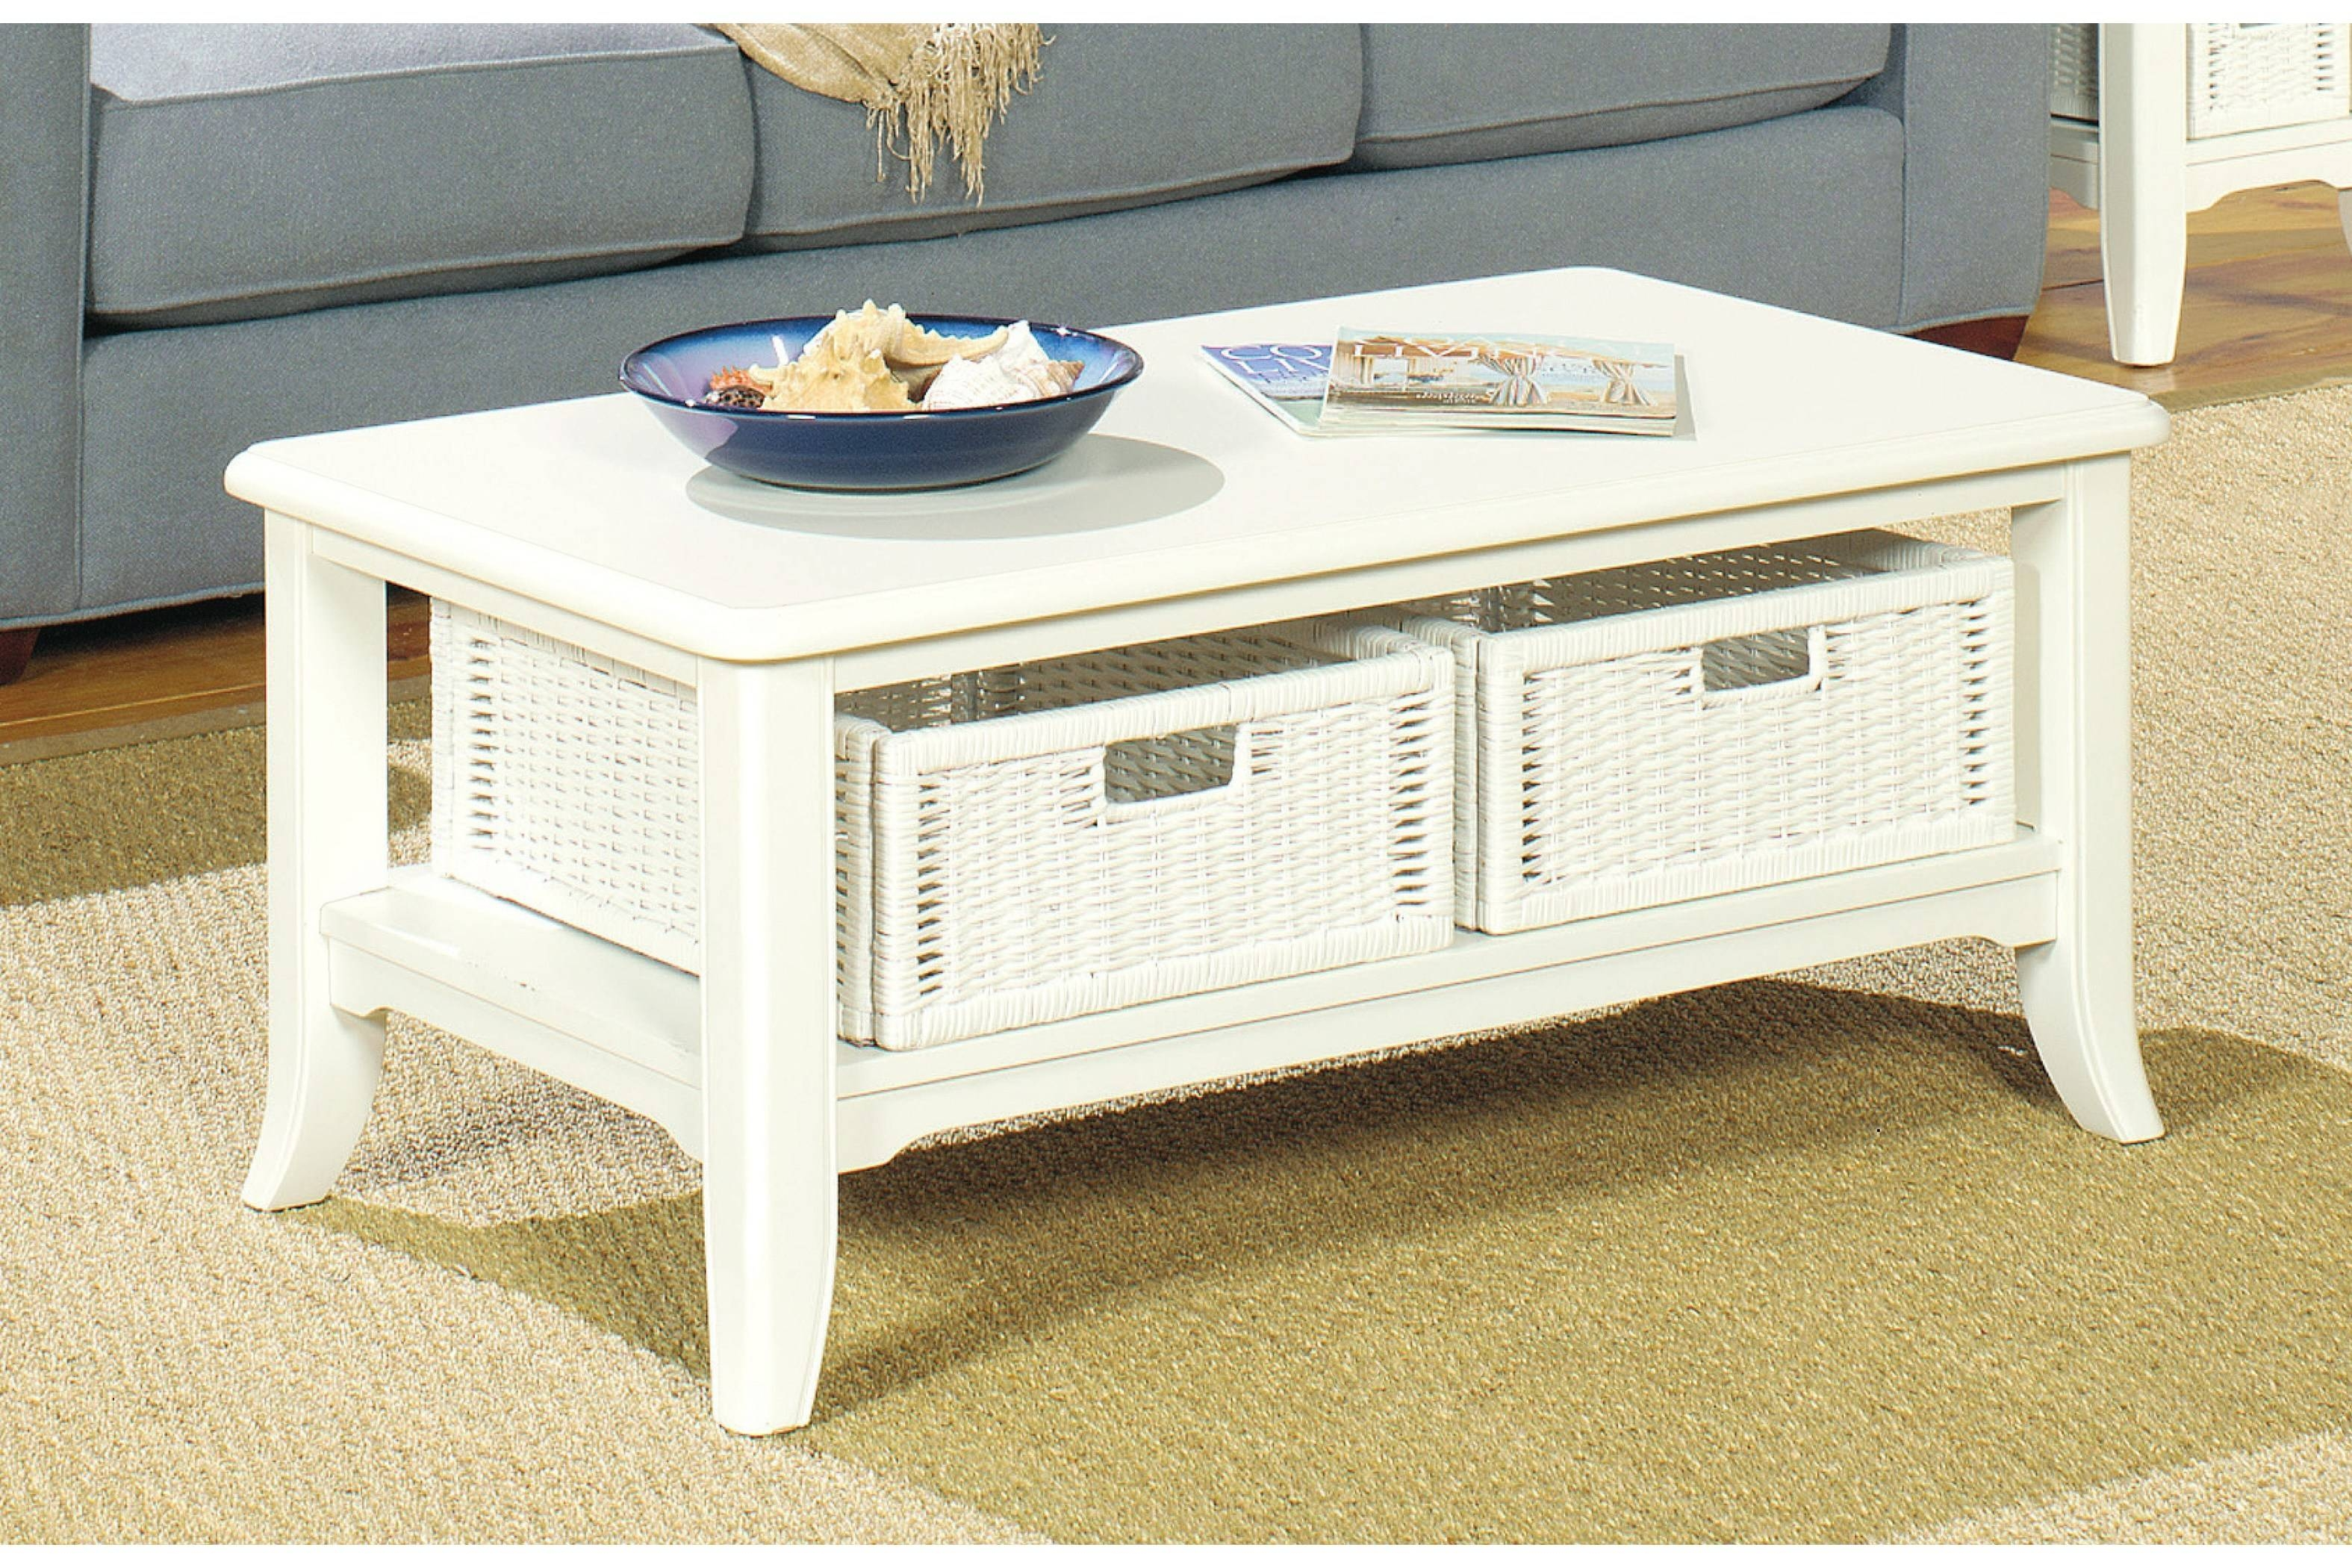 Coffee Table: Fascinating Square White Coffee Table Designs White with regard to White Coffee Tables With Storage (Image 7 of 30)